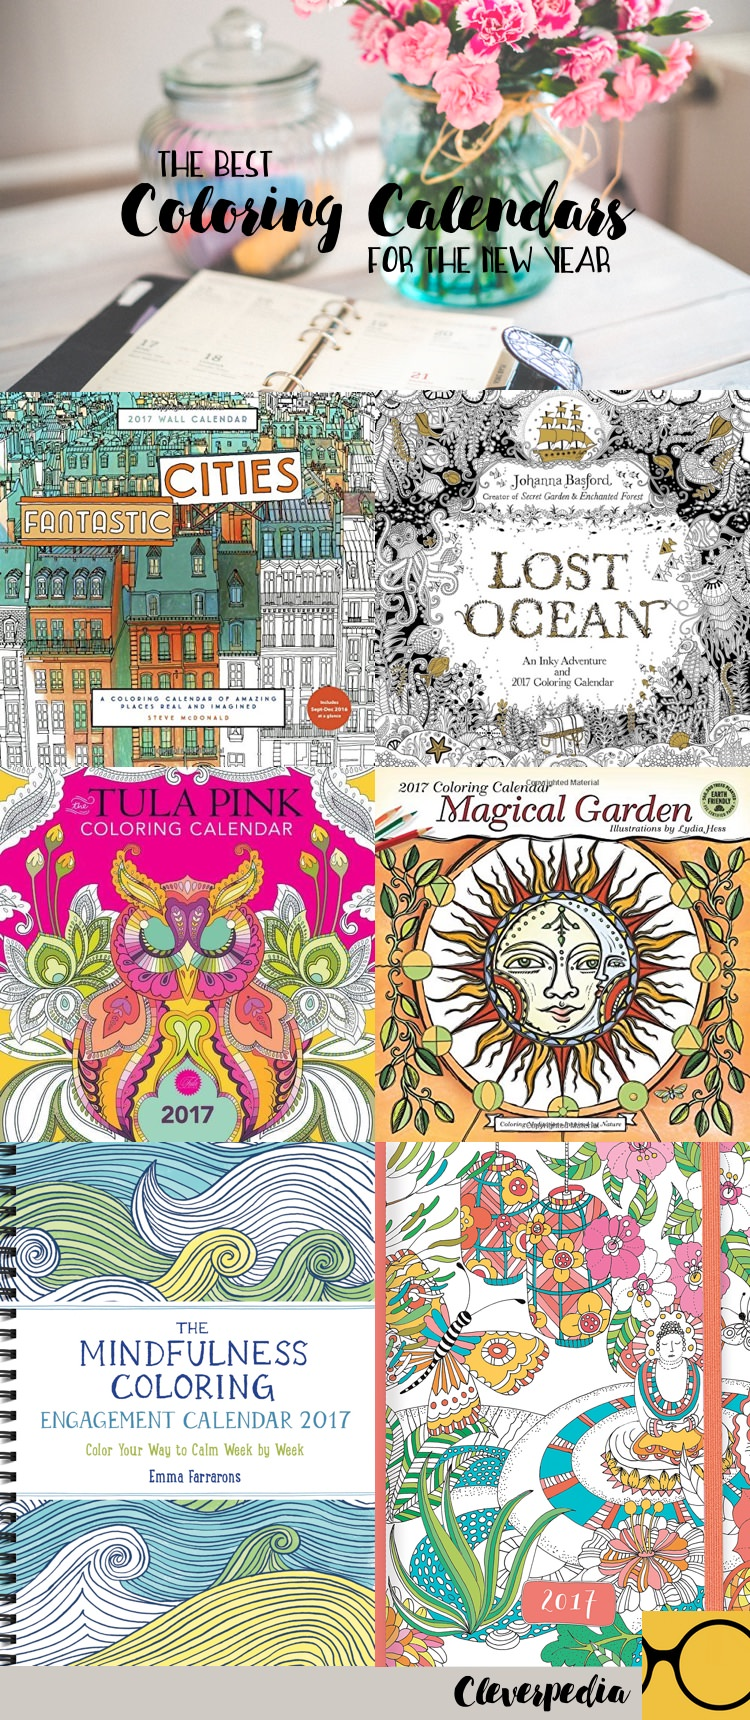 Love these coloring book calendars!